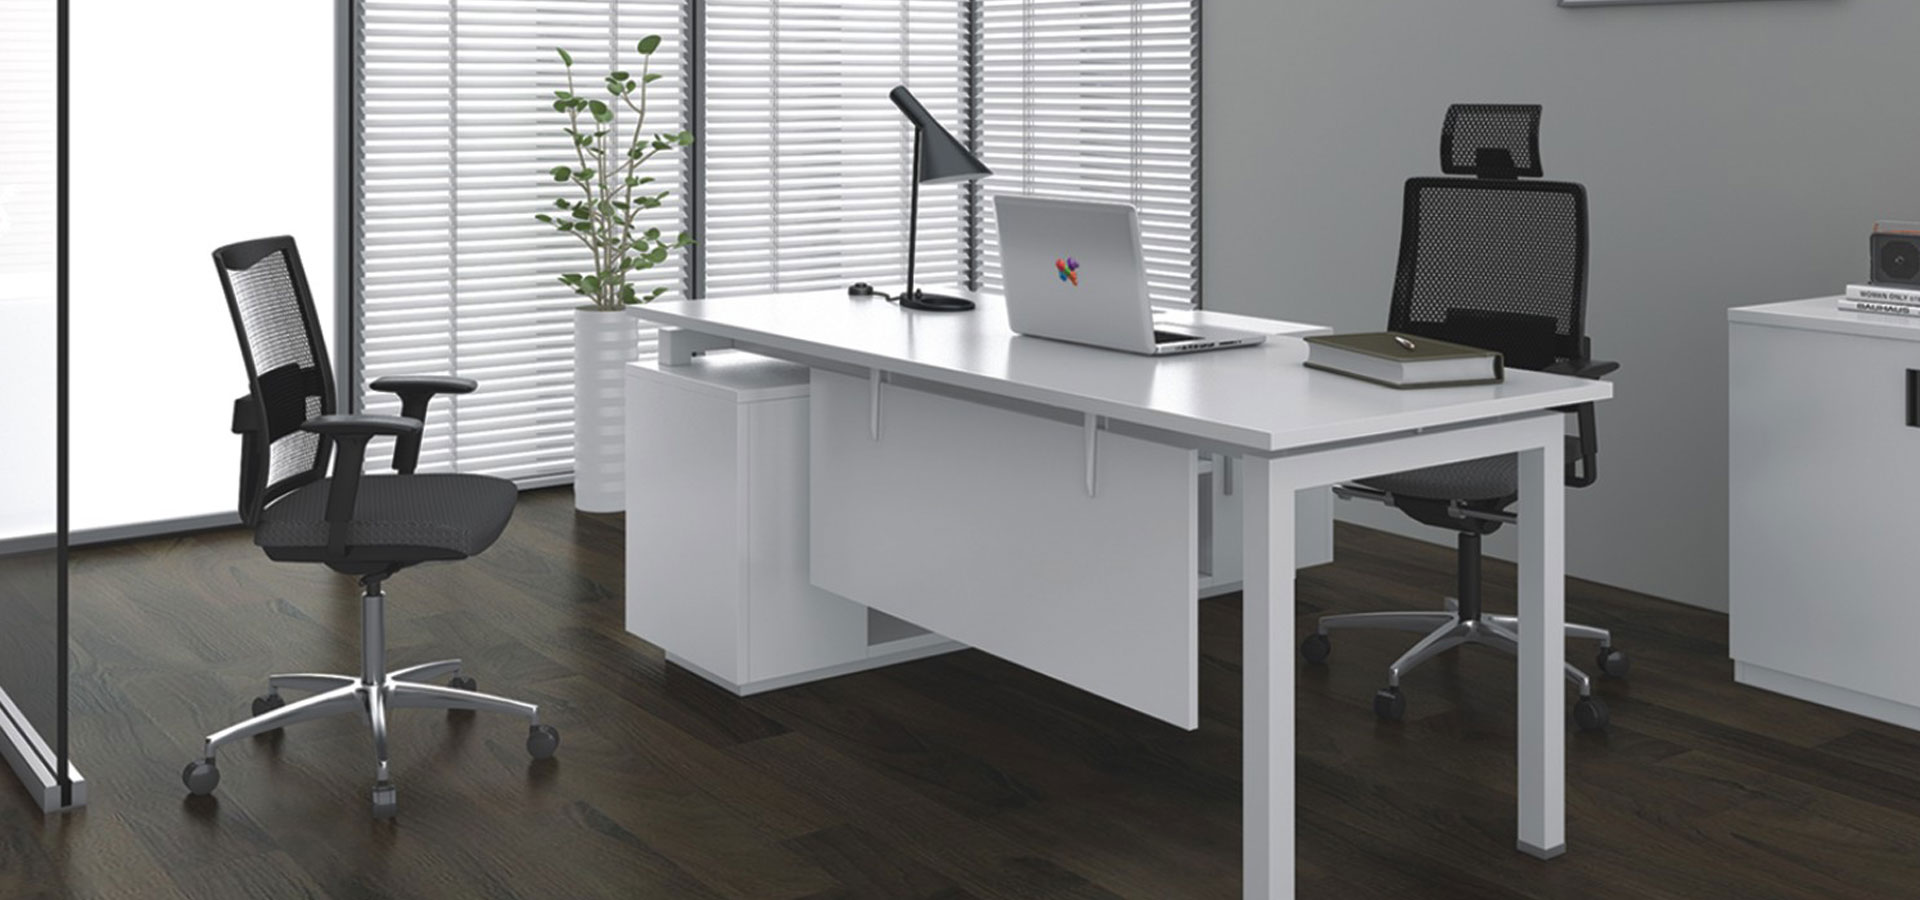 Buy Office Furniture Office Chairs In Gurugram Delhi Manufacturer Buy Online